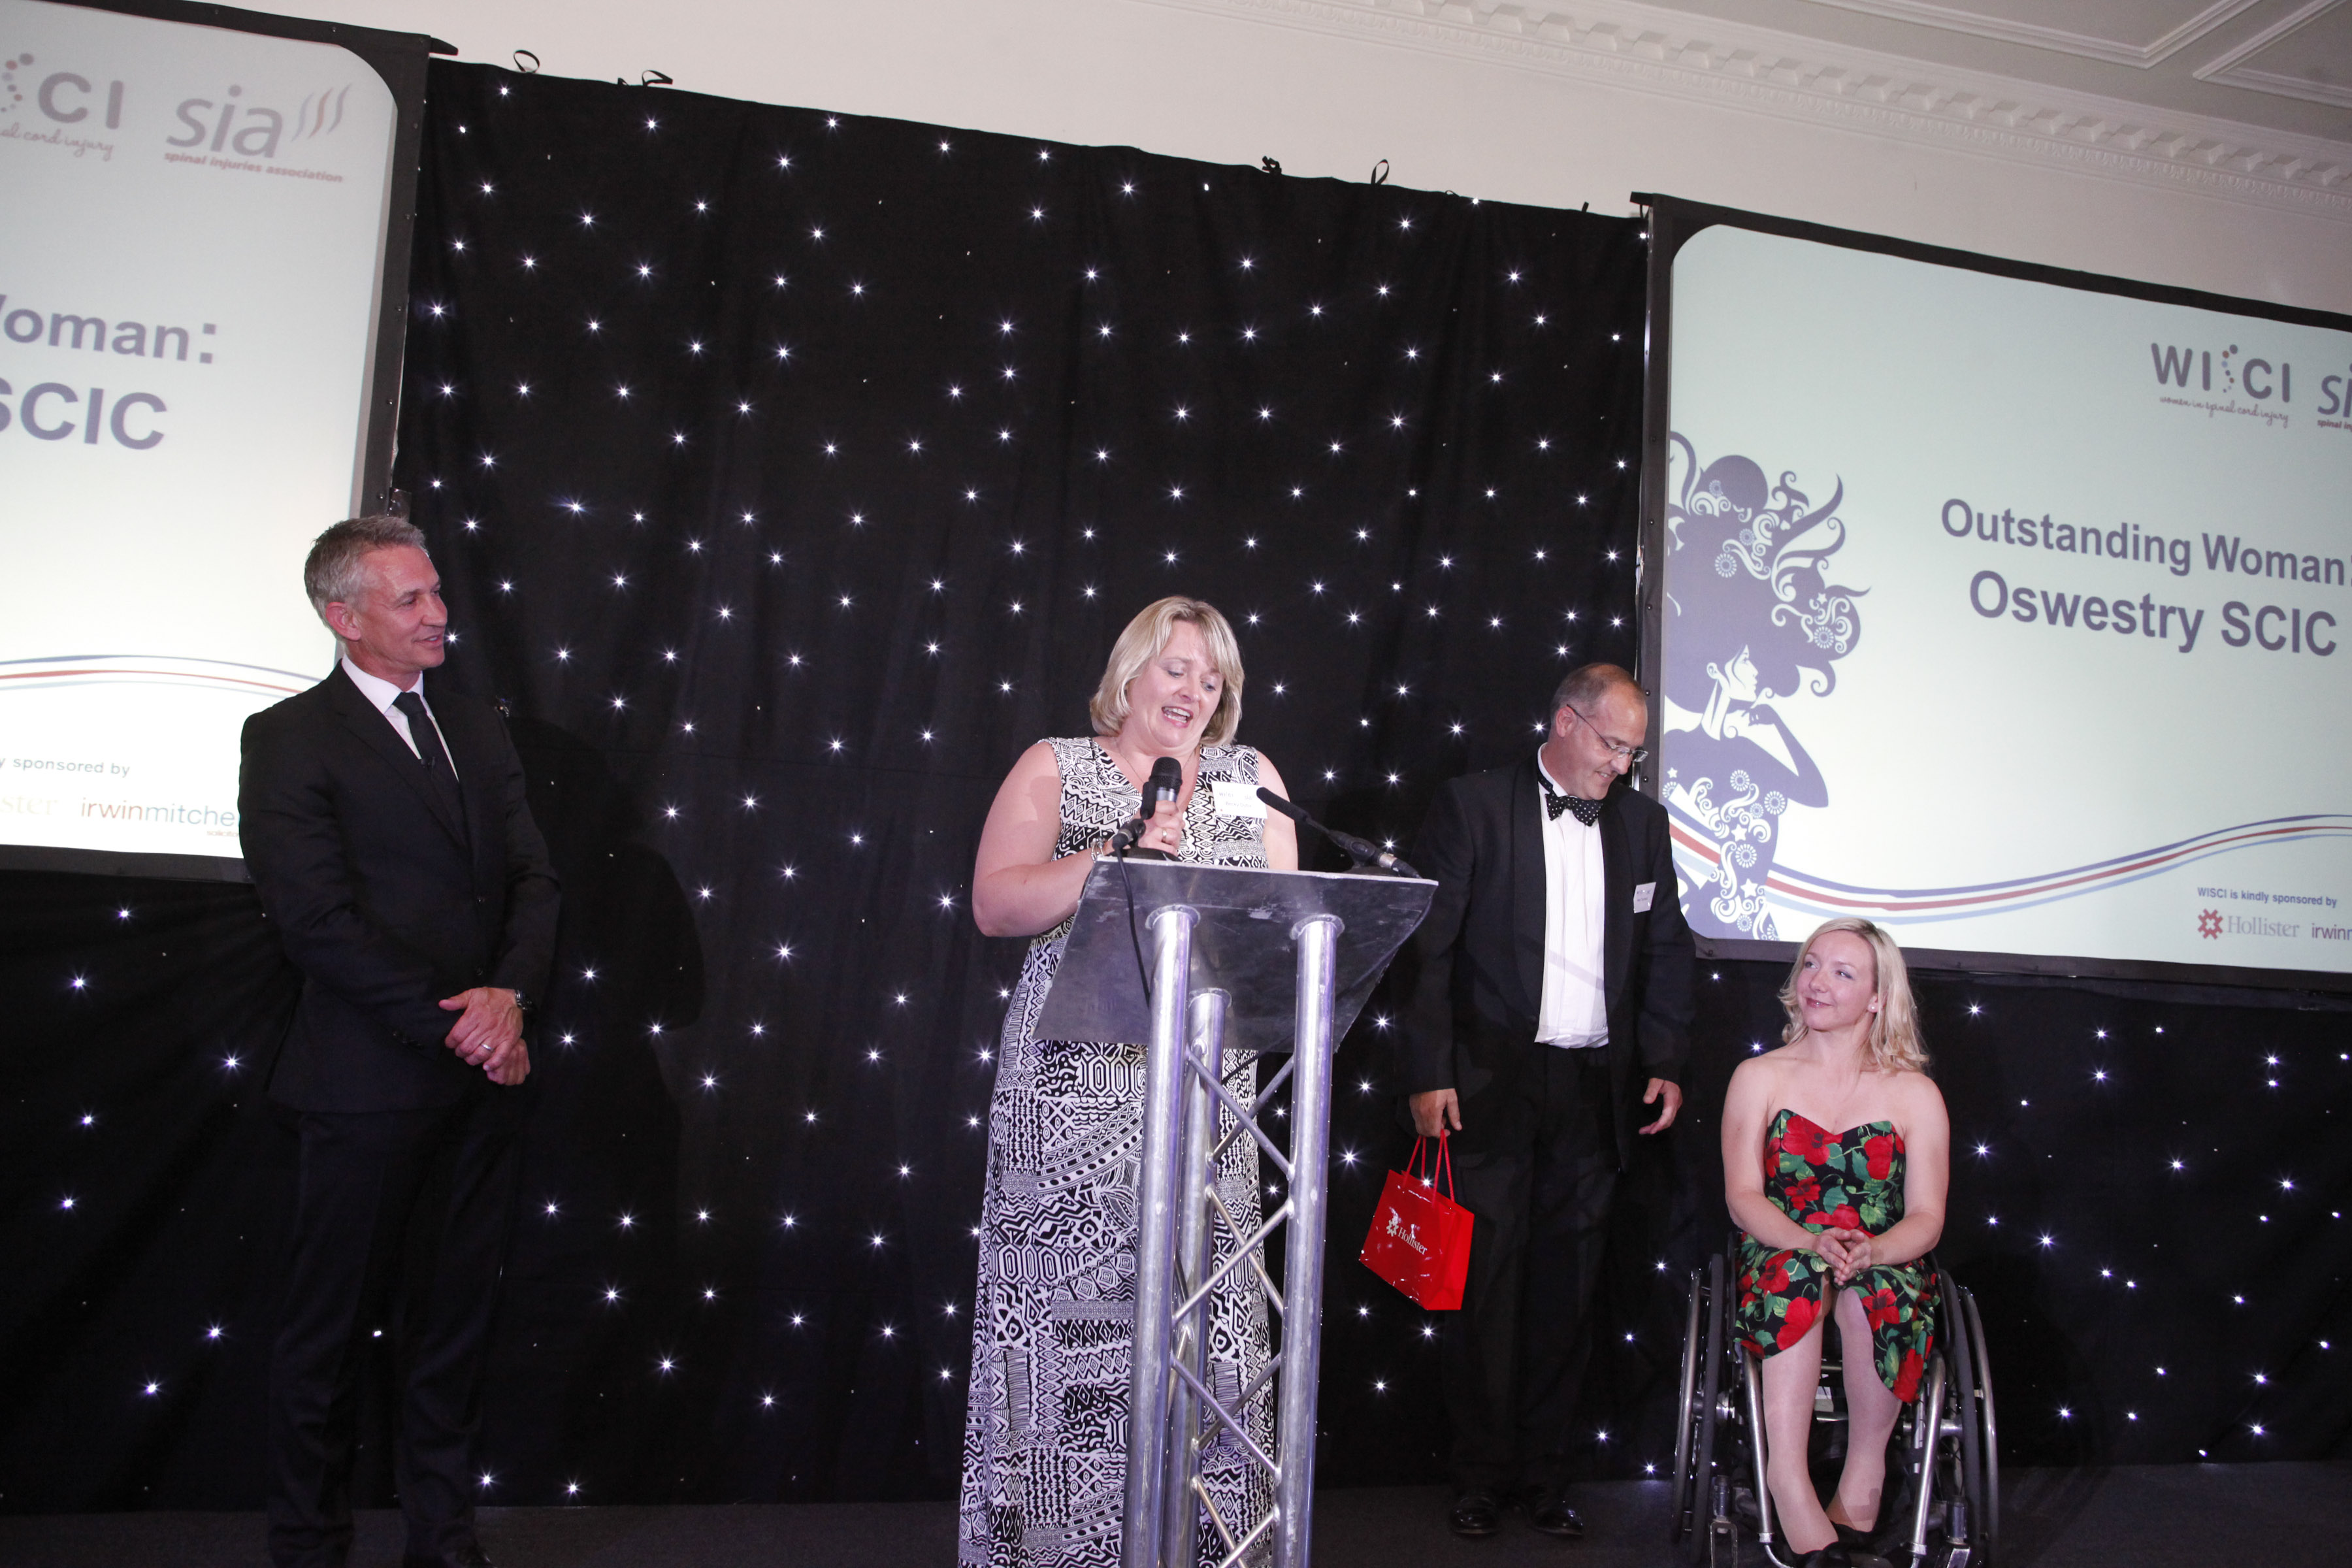 Celebs journey to Birmingham for charity awards